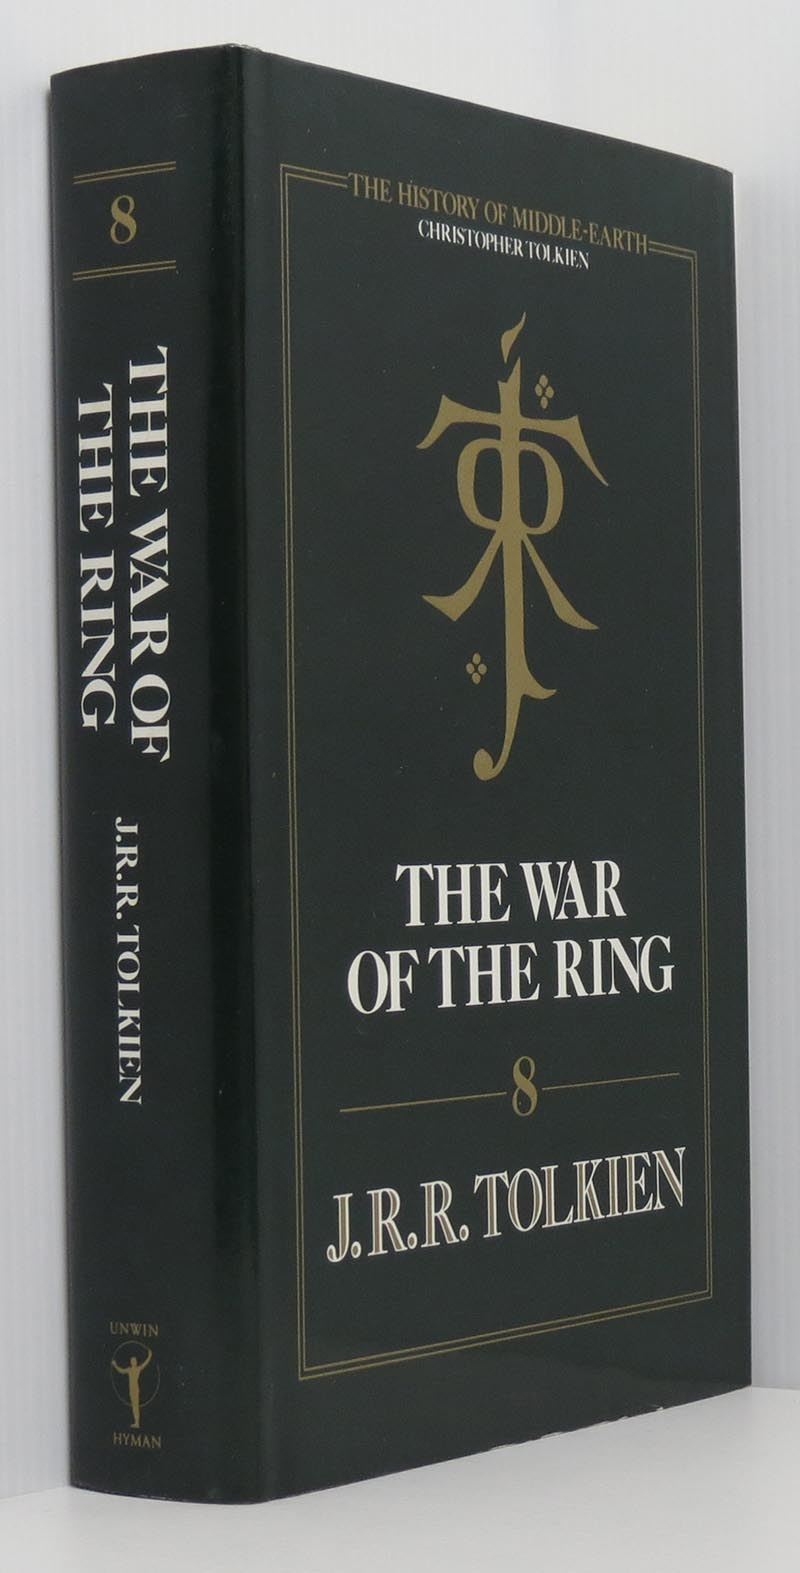 The War of the Ring: The History of the Lord of the Rings Part Three. ( History of Middle-Earth Book 8)